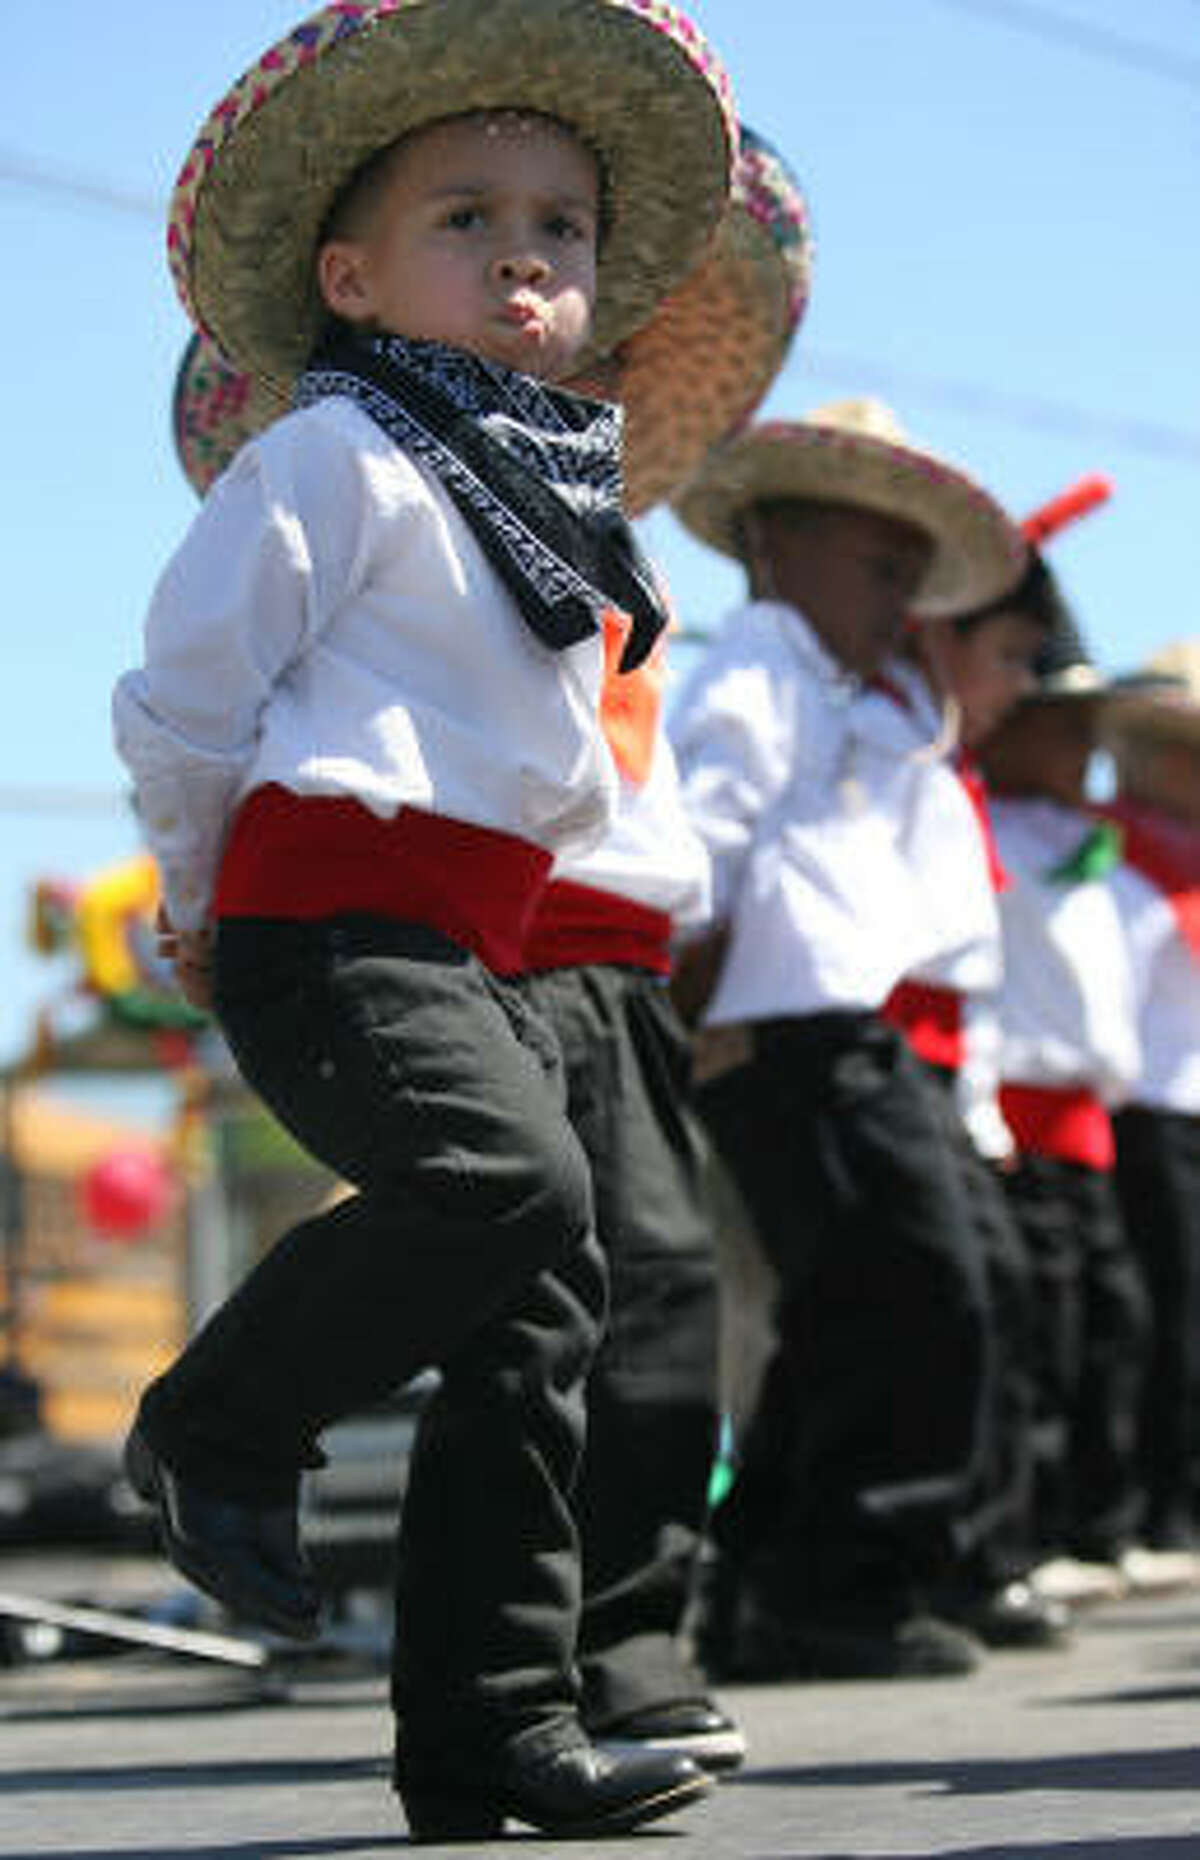 Hayden Alaniz gives his all as he stomps to the beat during the Cinco de Mayo performance.